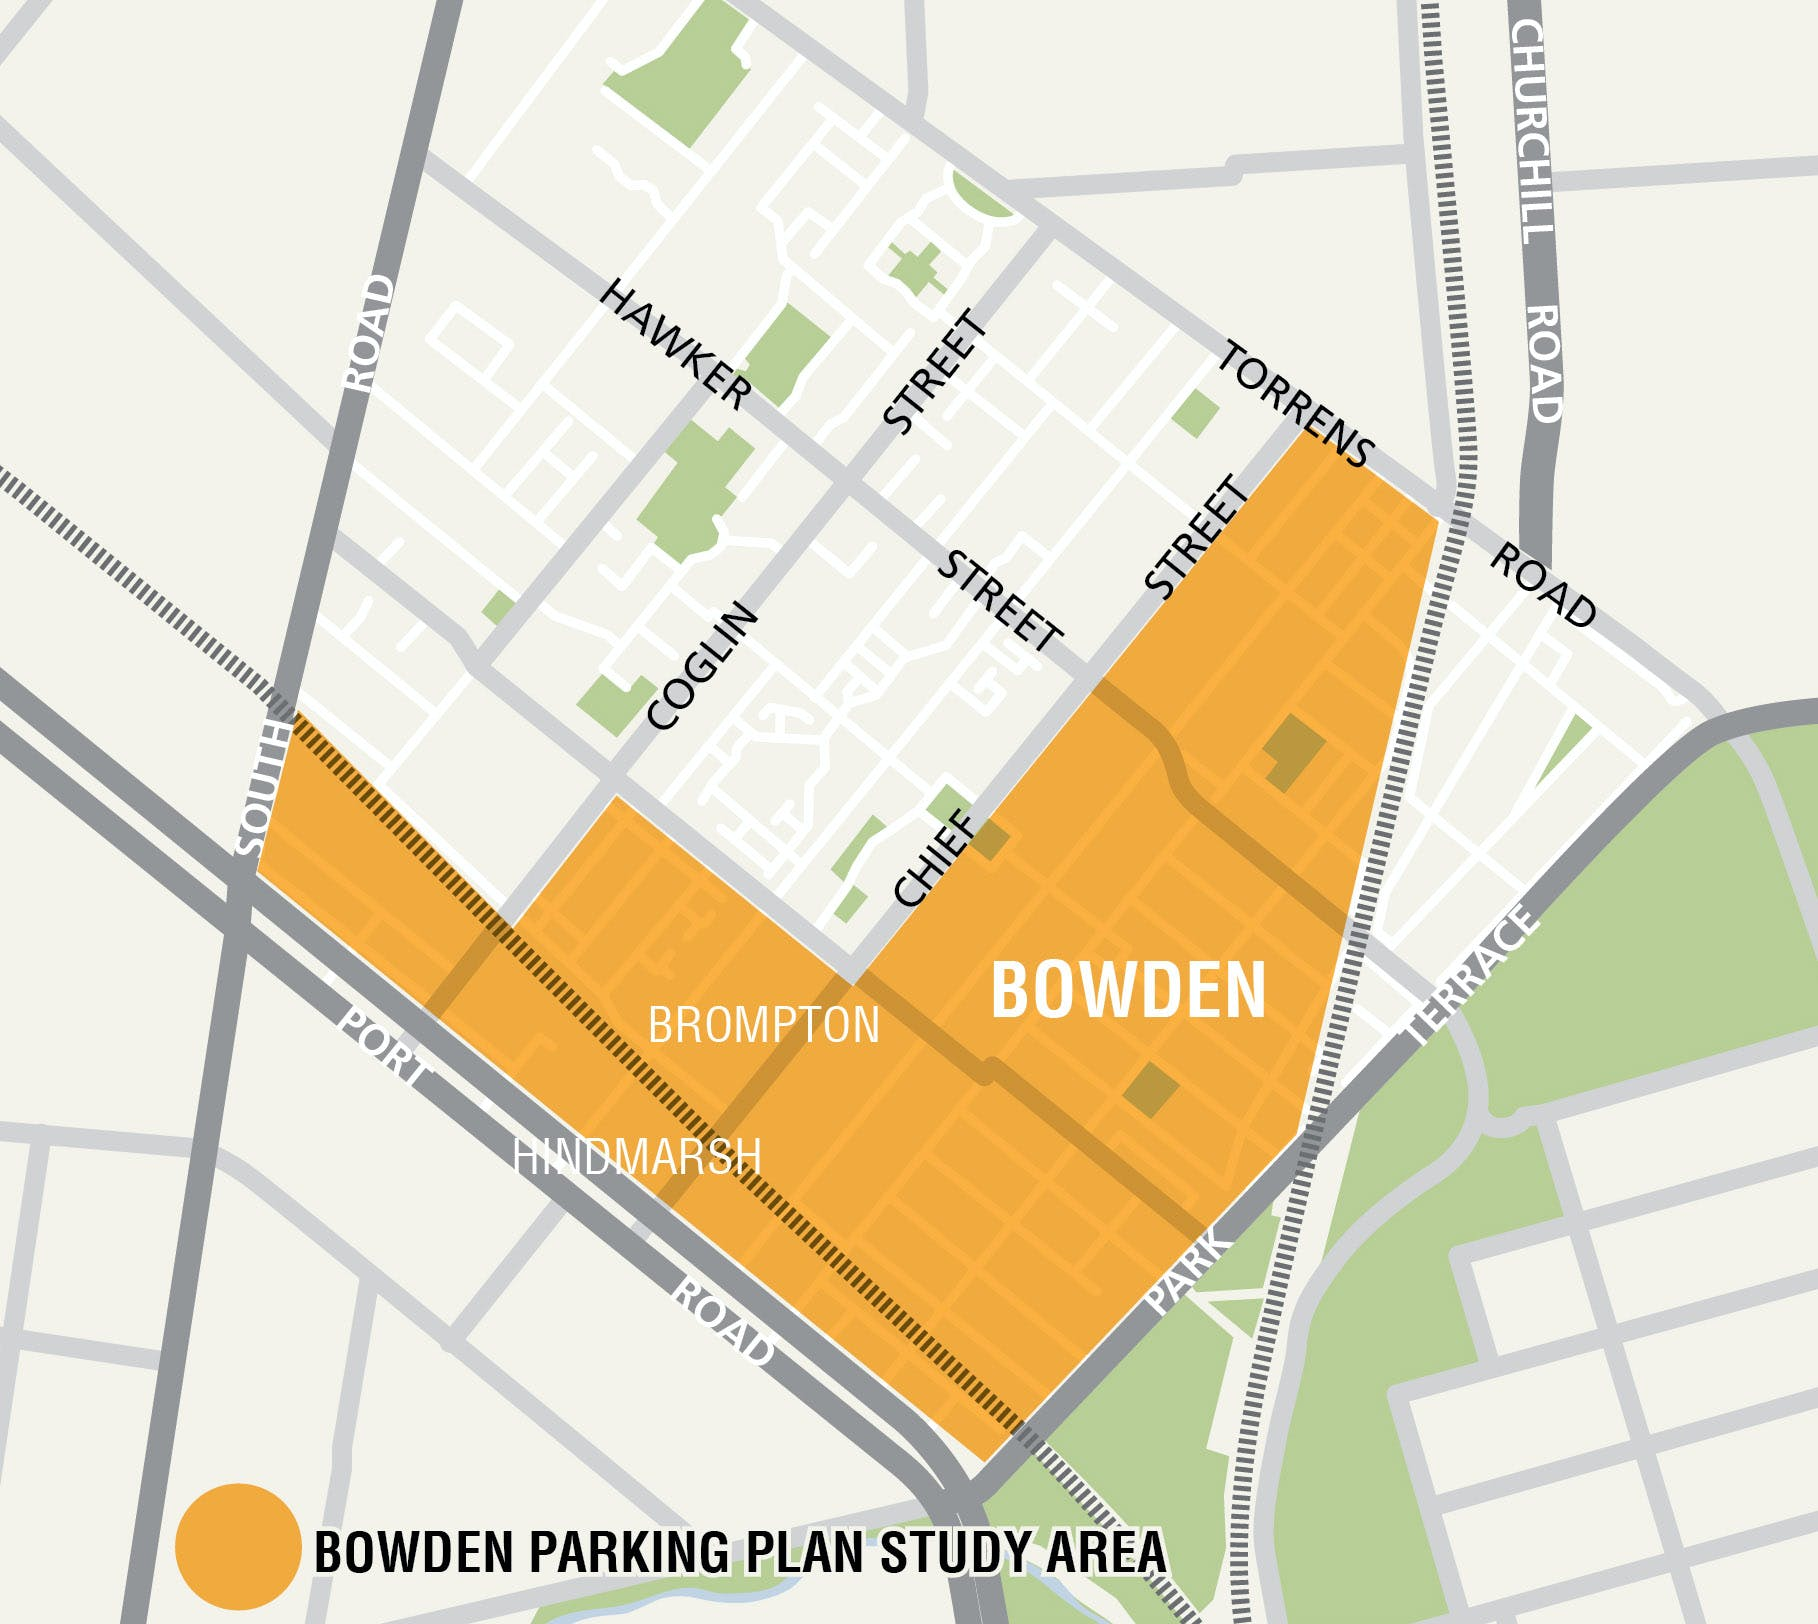 Bowden Parking Plan | Your Say Charles Sturt on